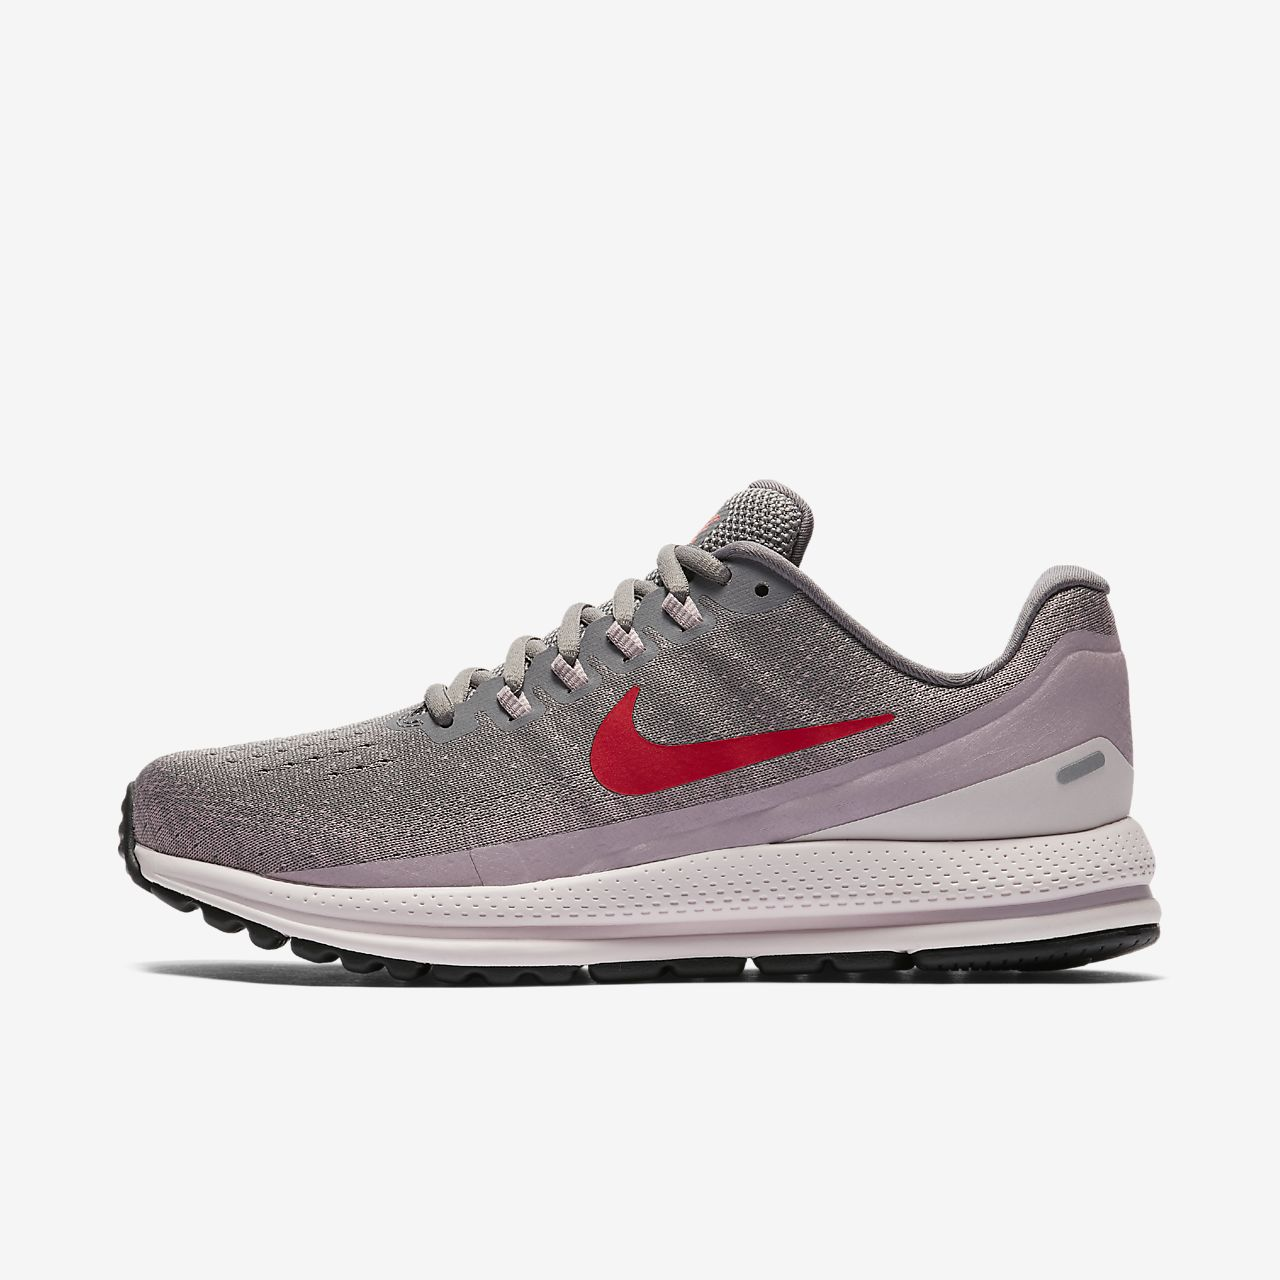 brand new 8fa7a 52fc7 ... Chaussure de running Nike Air Zoom Vomero 13 pour Femme